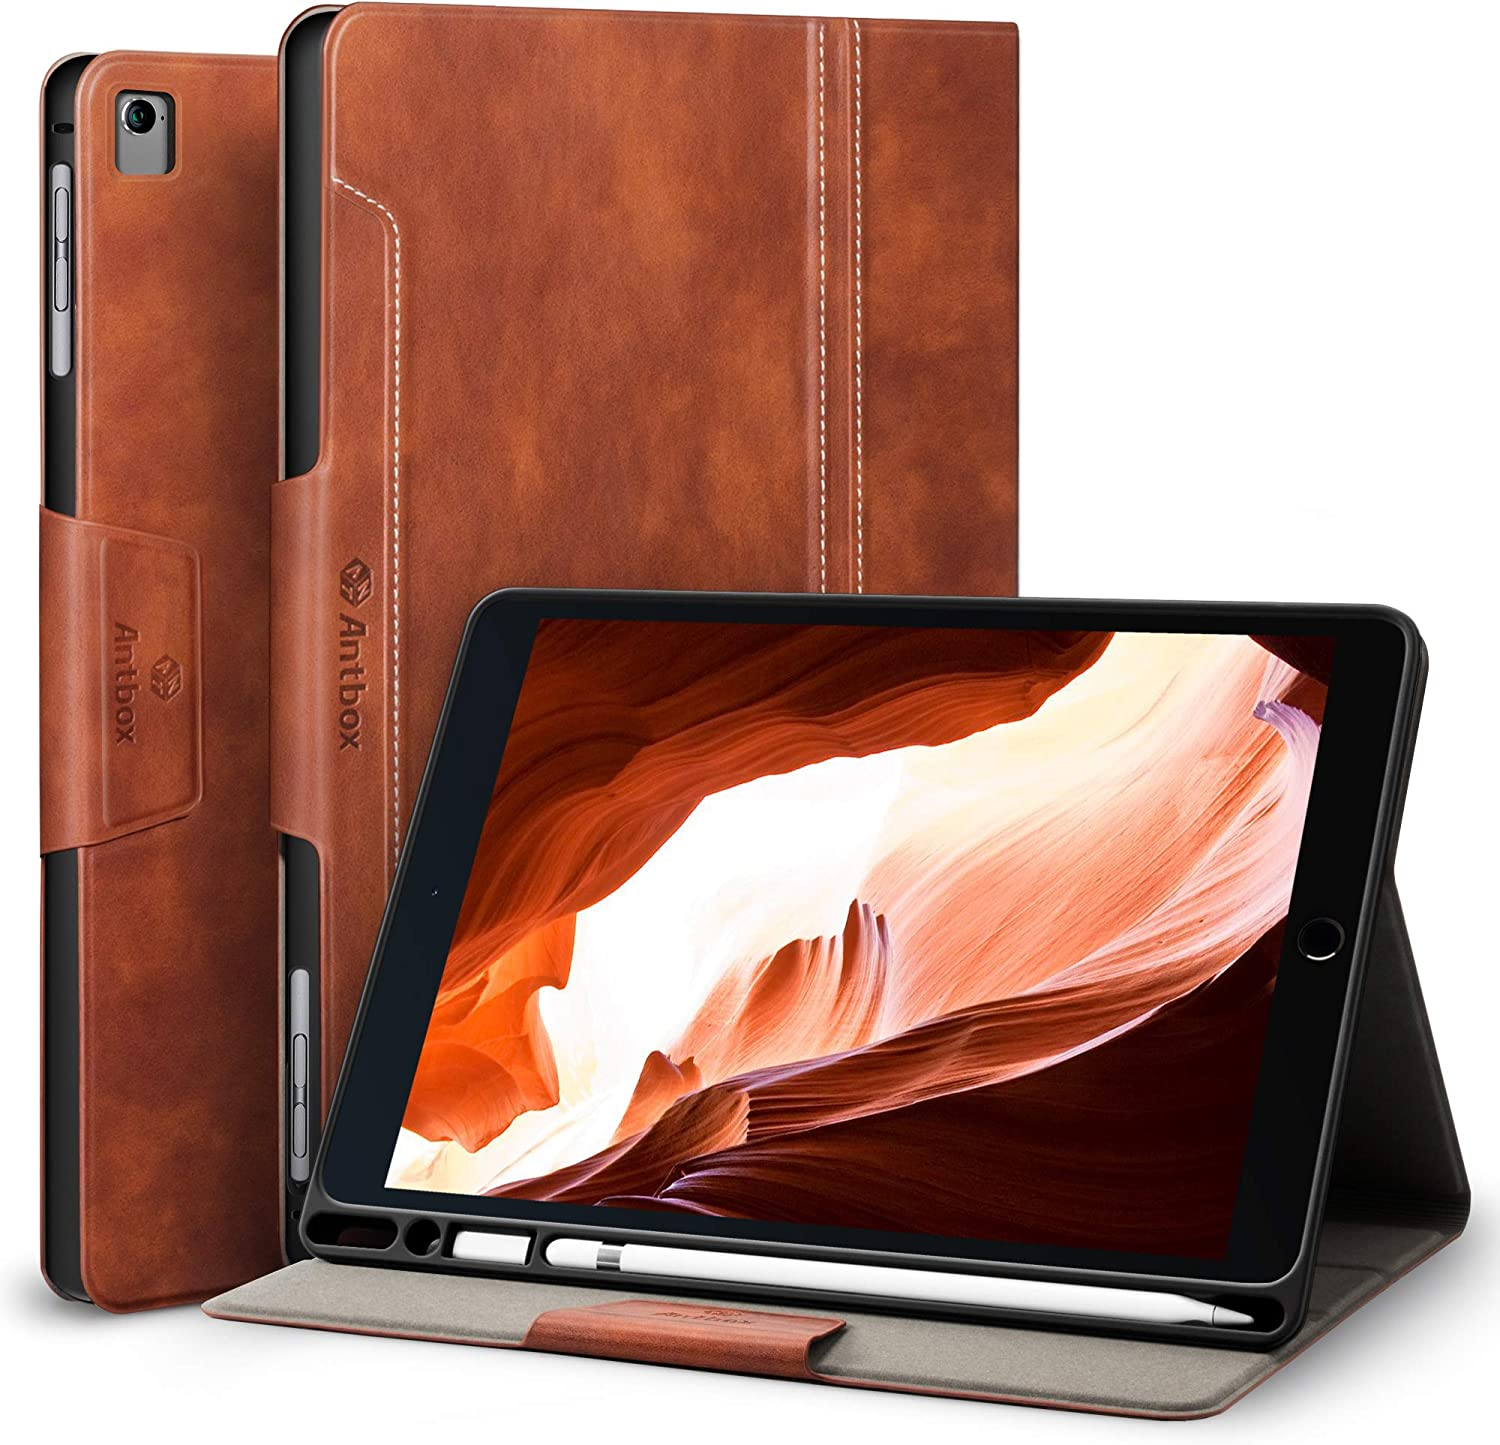 Antbox iPad Case for iPad Pro 9.7/ iPad Air/iPad Air 2 with Built-in Apple Pencil Holder Auto Sleep/Wake Function PU Leather Smart Cover (Brown)